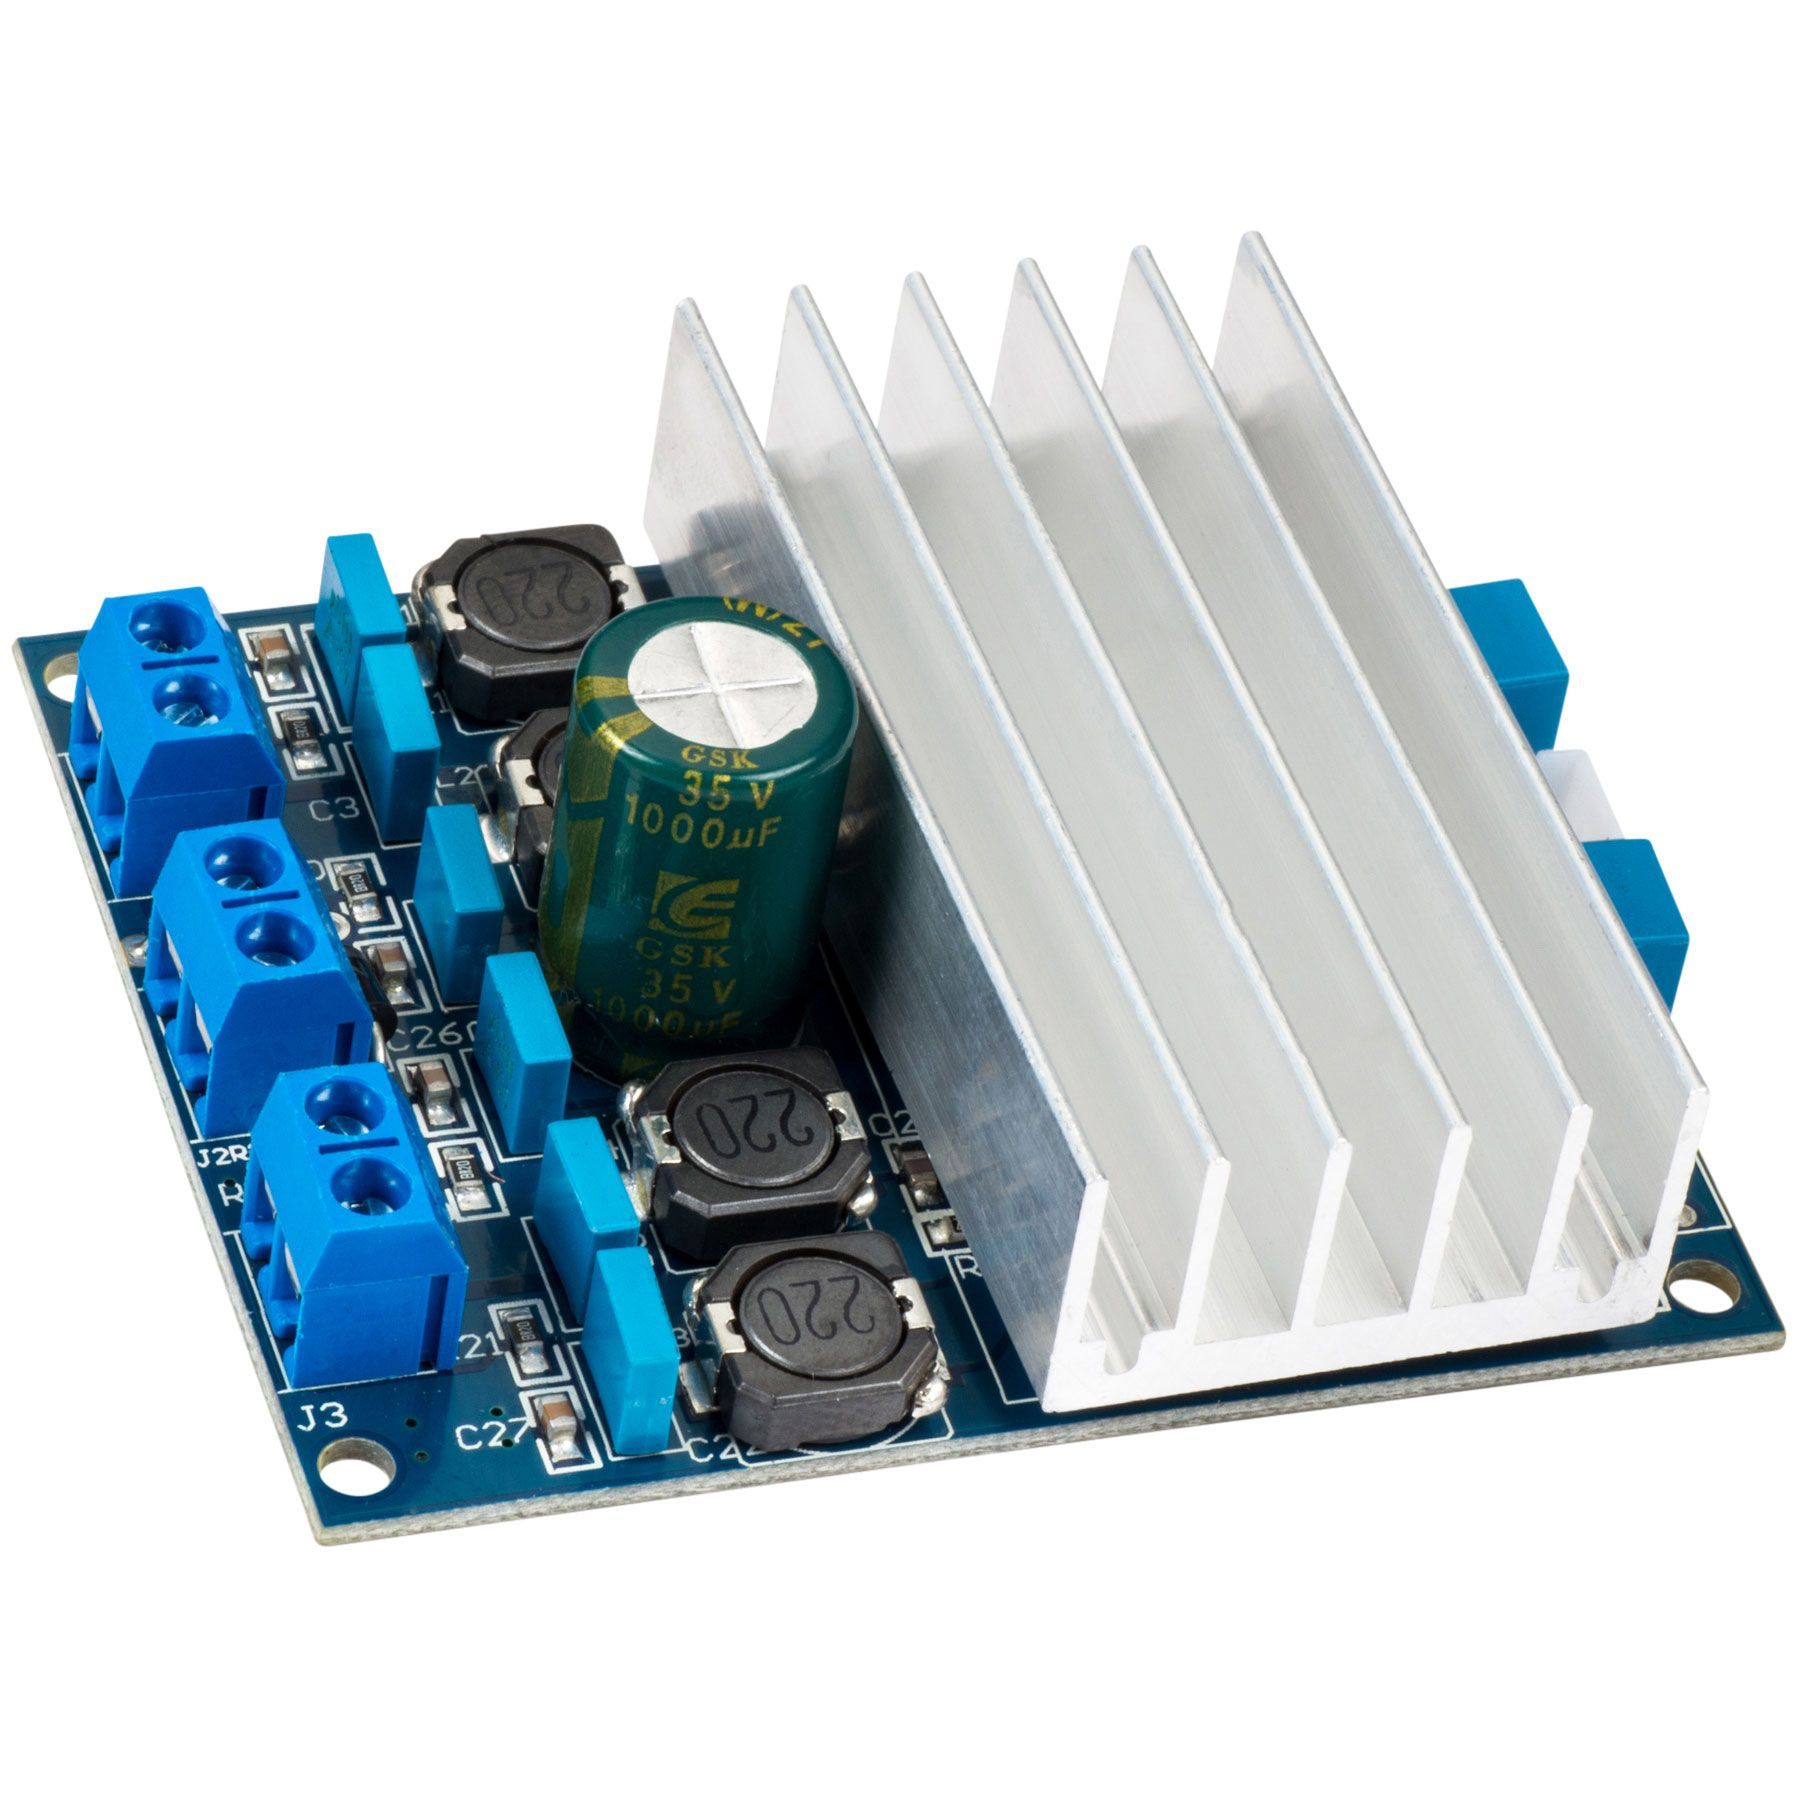 Tda7492 Digital Audio Amplifier Board 2x50w Custom Speakers With The Potentiometer Controlled By Arduino Uno